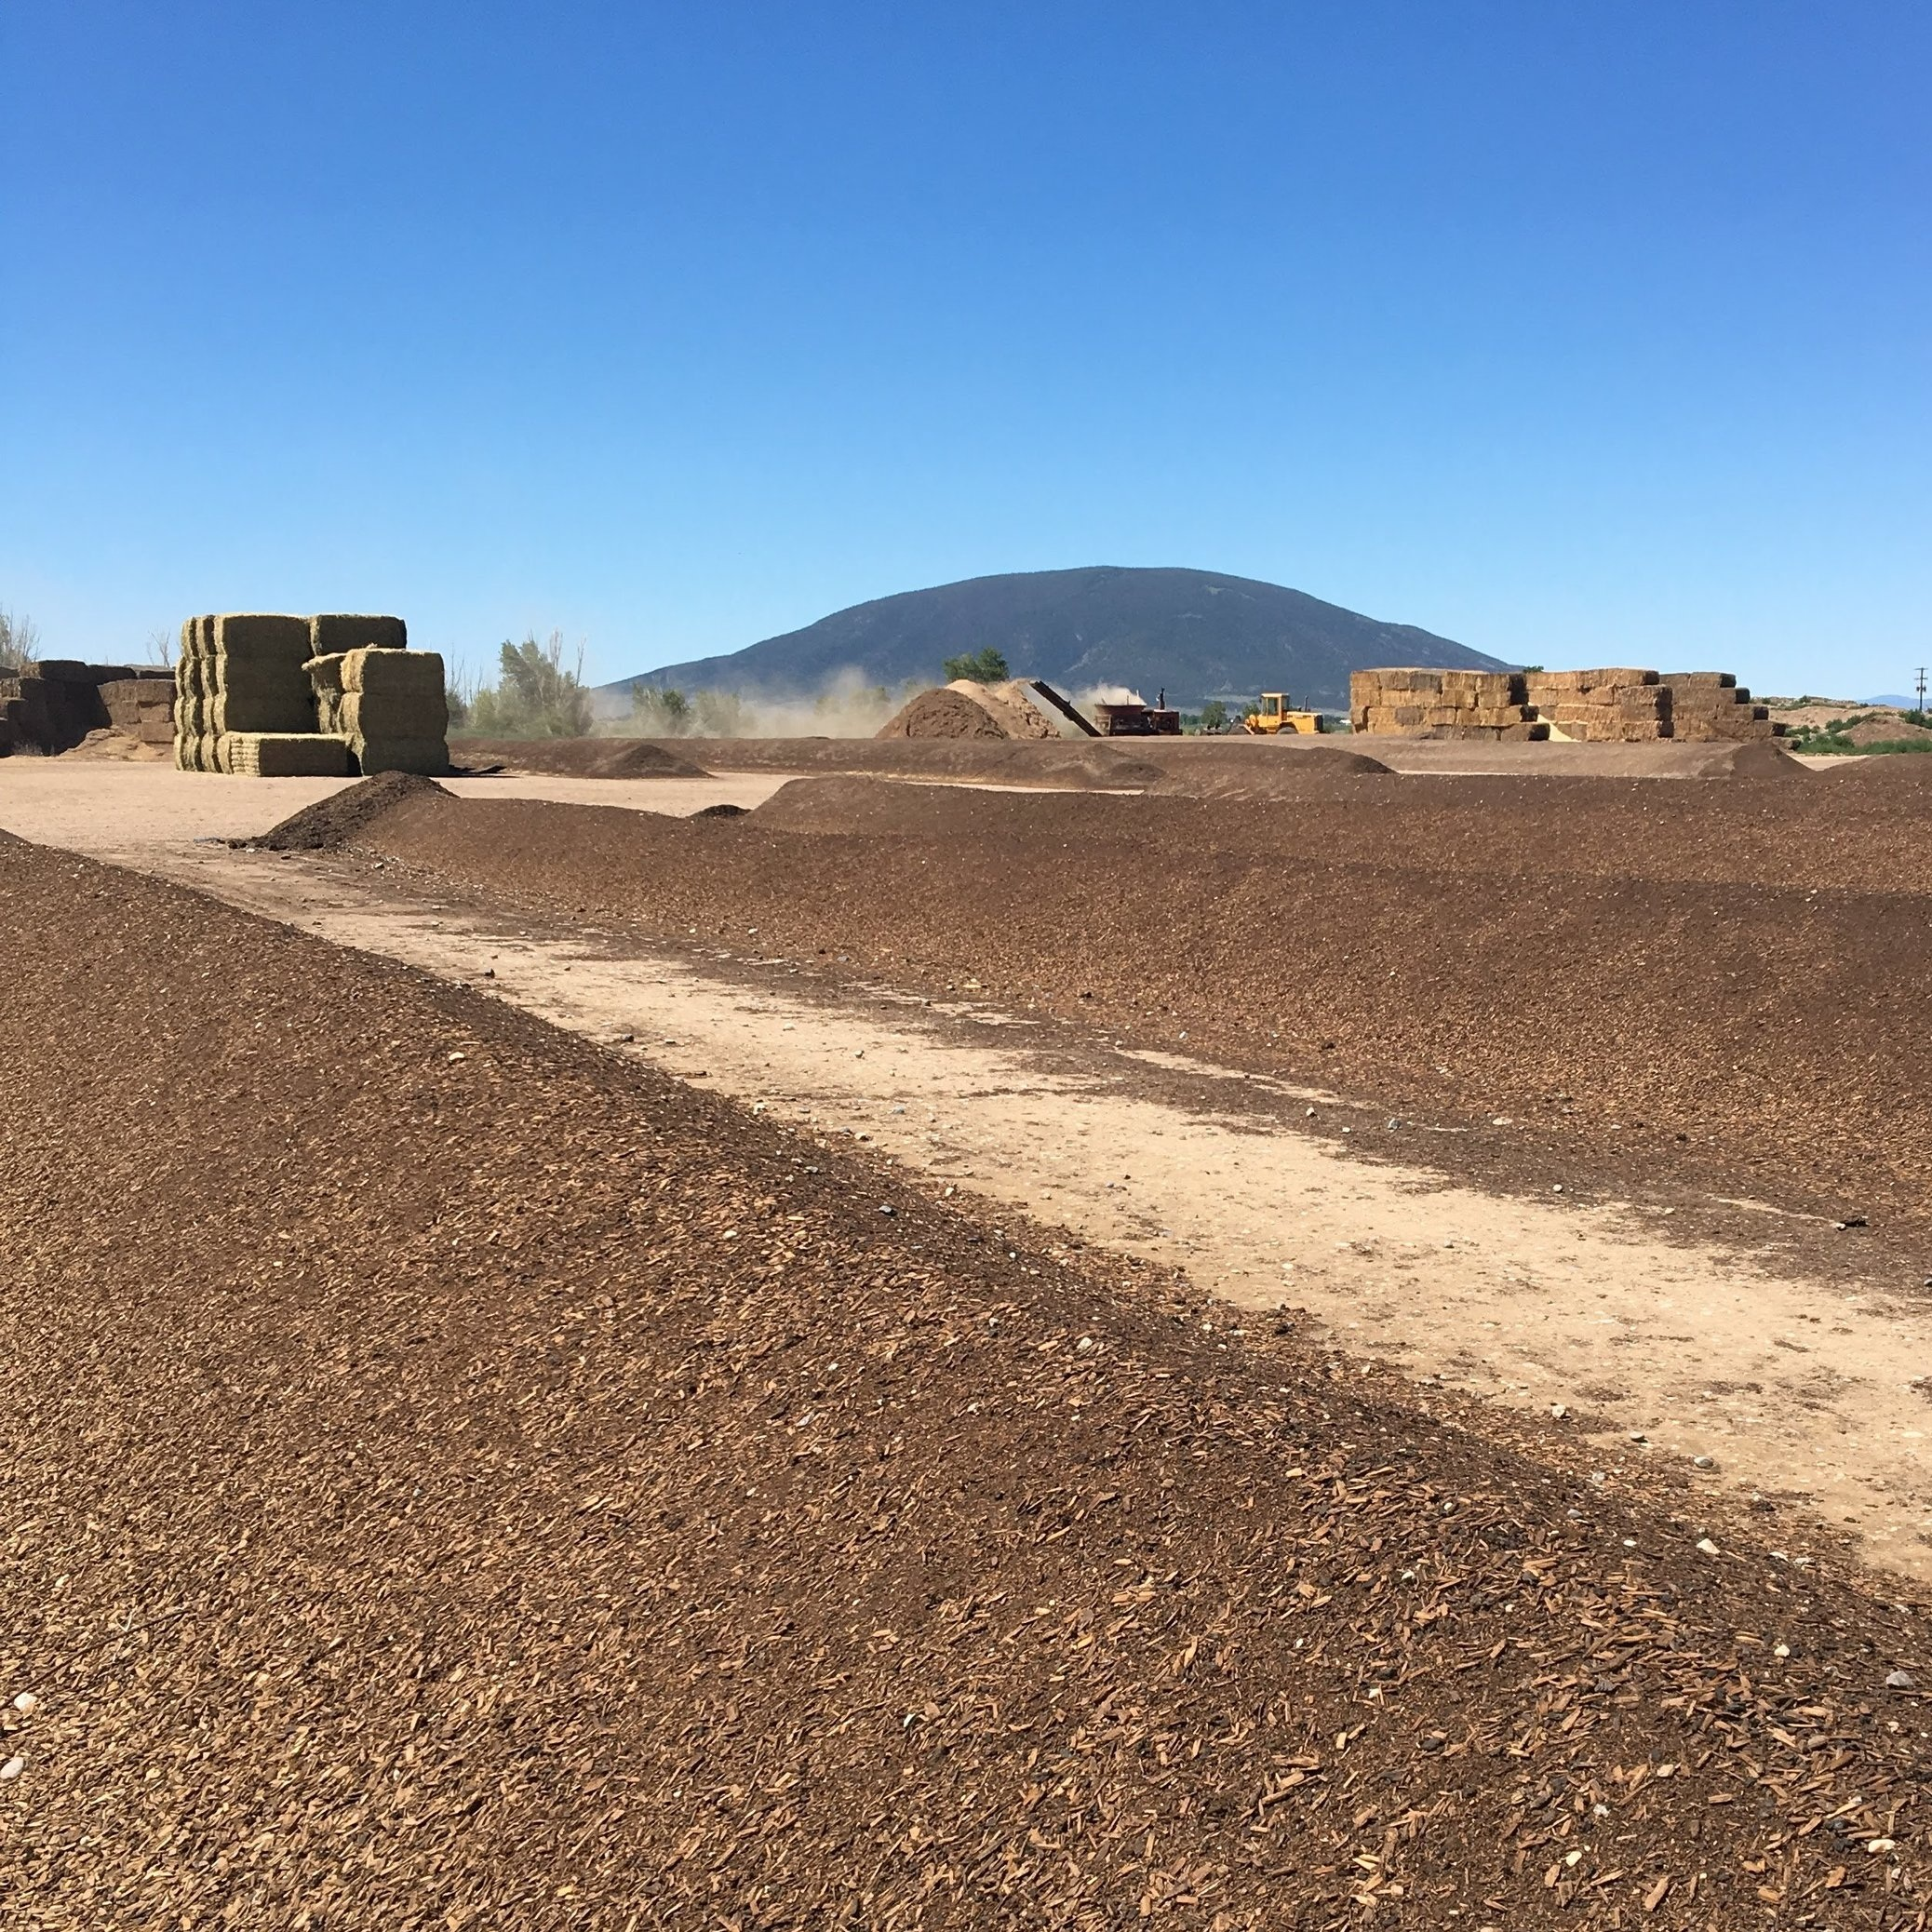 Commercial compost is typically made using the windrow method, where water is mixed with wood chips and straw, then mechanically turned. The process uses a lot of diesel fuel, and the compost has a low microbial and fungal content.